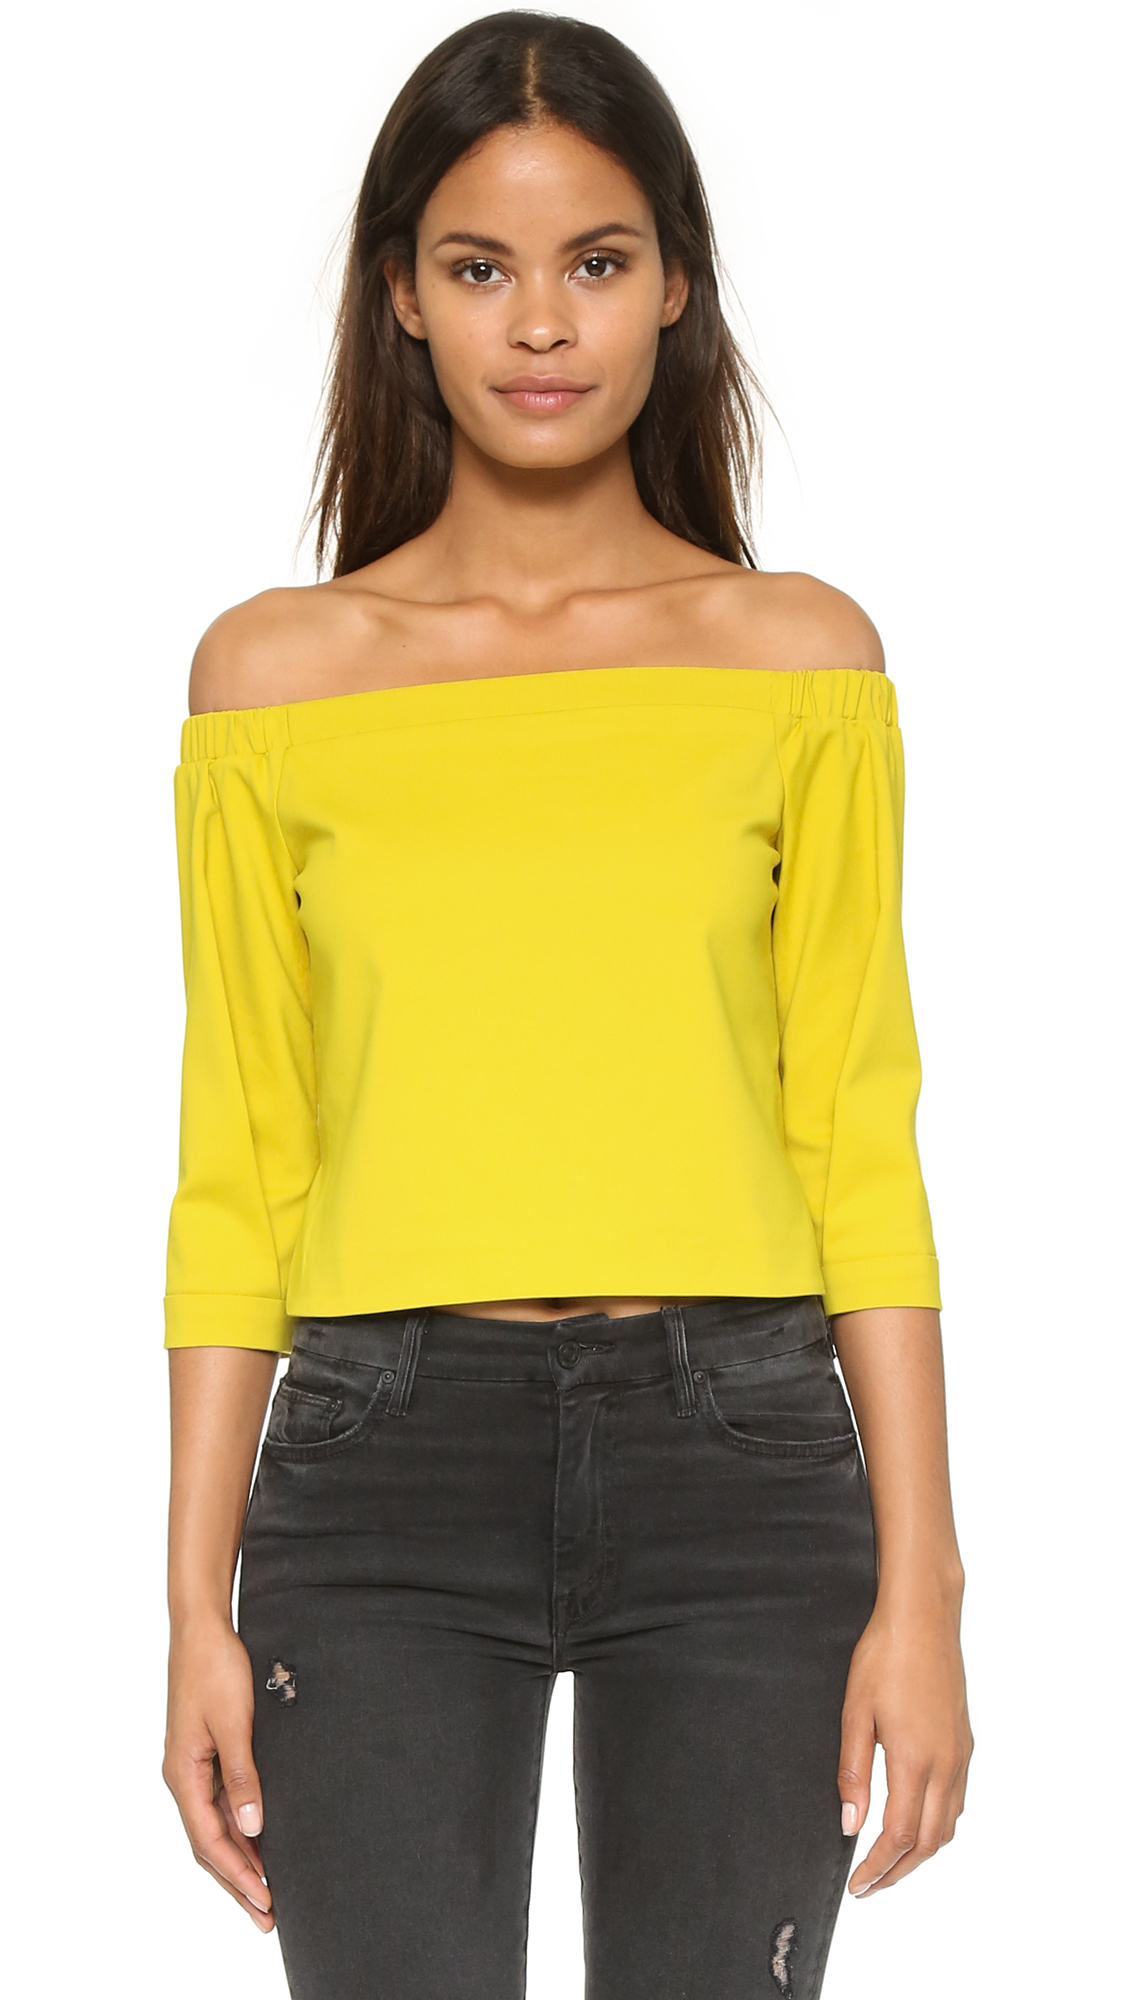 09b69c1b0e9a Lyst - Tibi Off Shoulder Top in Yellow